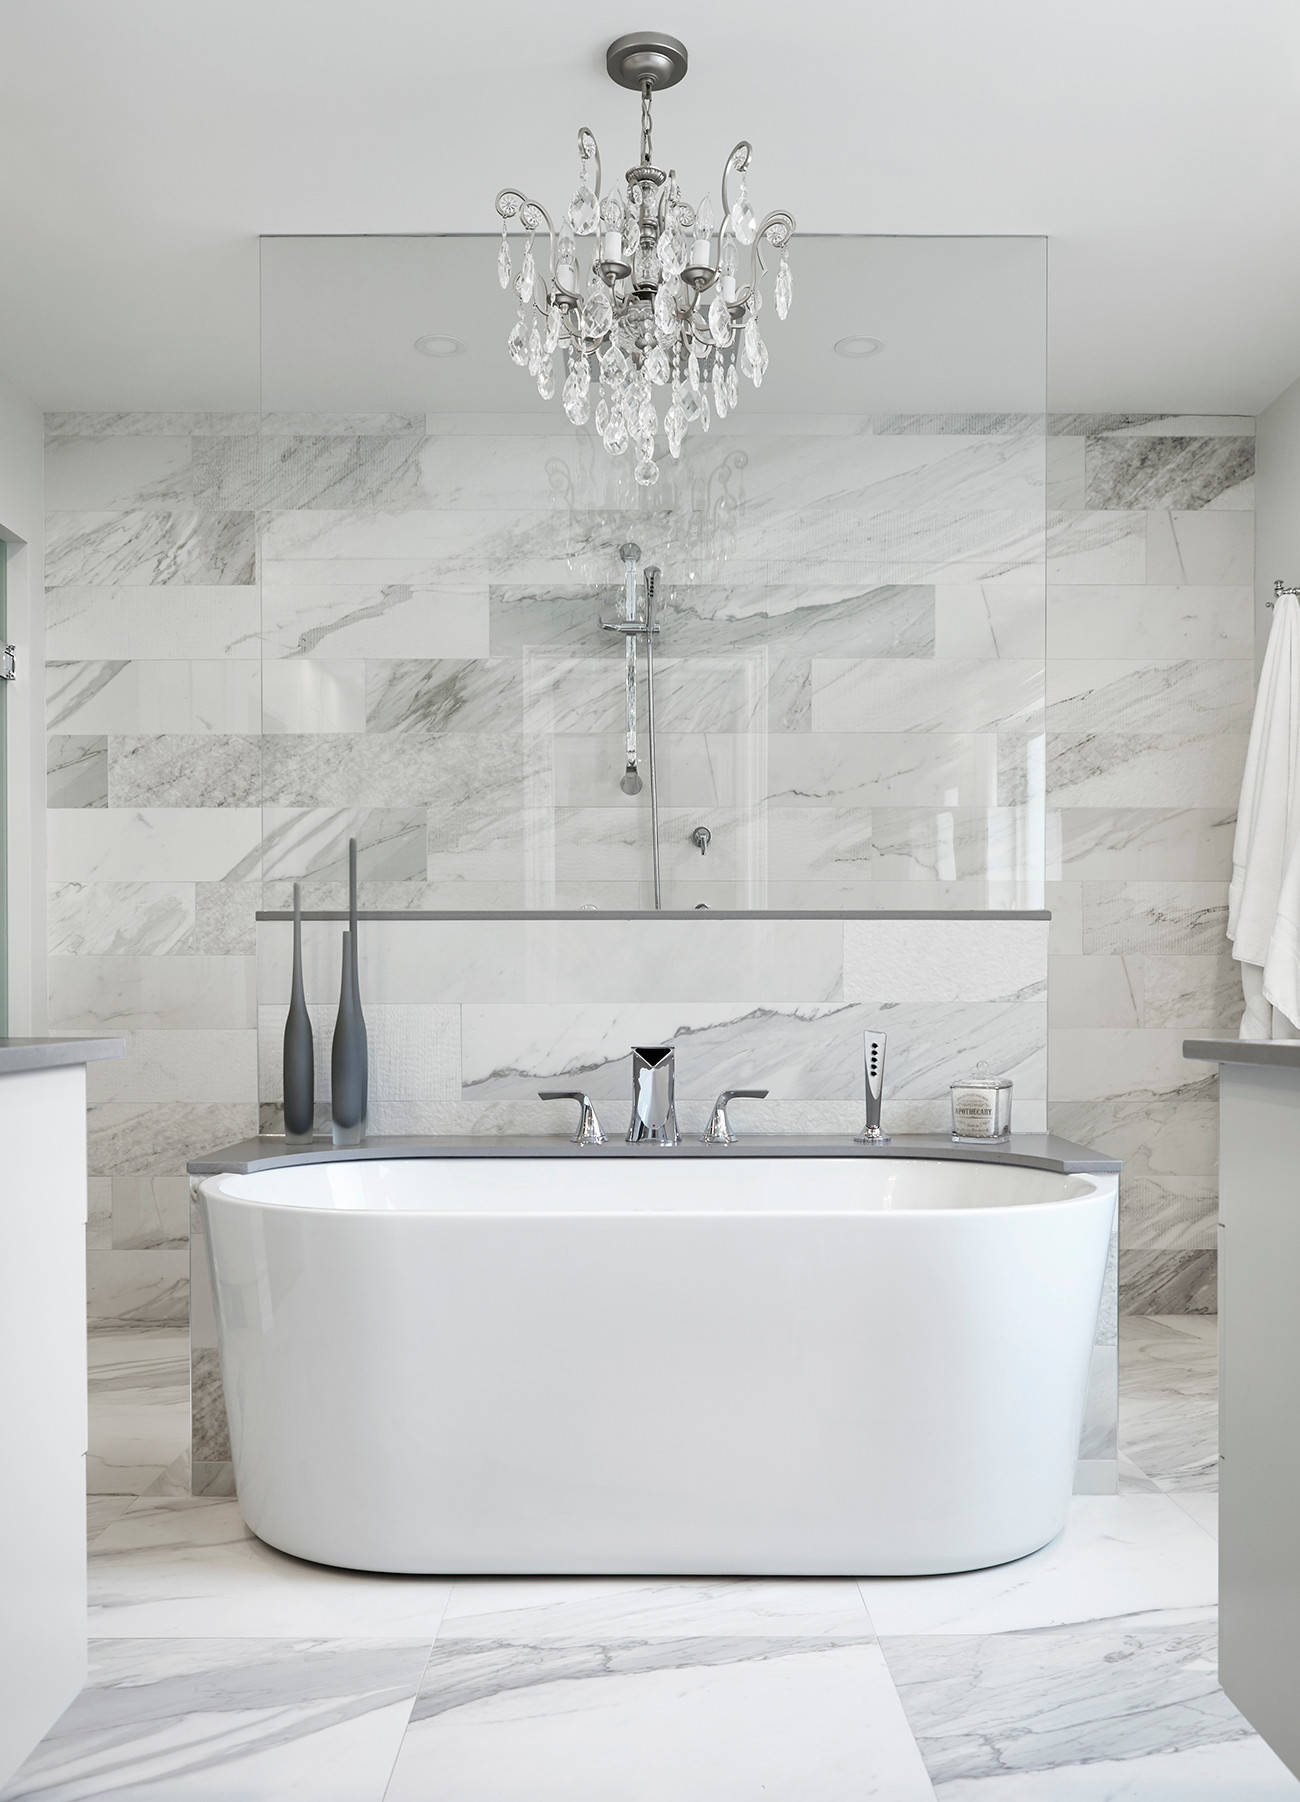 75 Beautiful Marble Tile Walk In Shower Pictures Ideas December 2020 Houzz